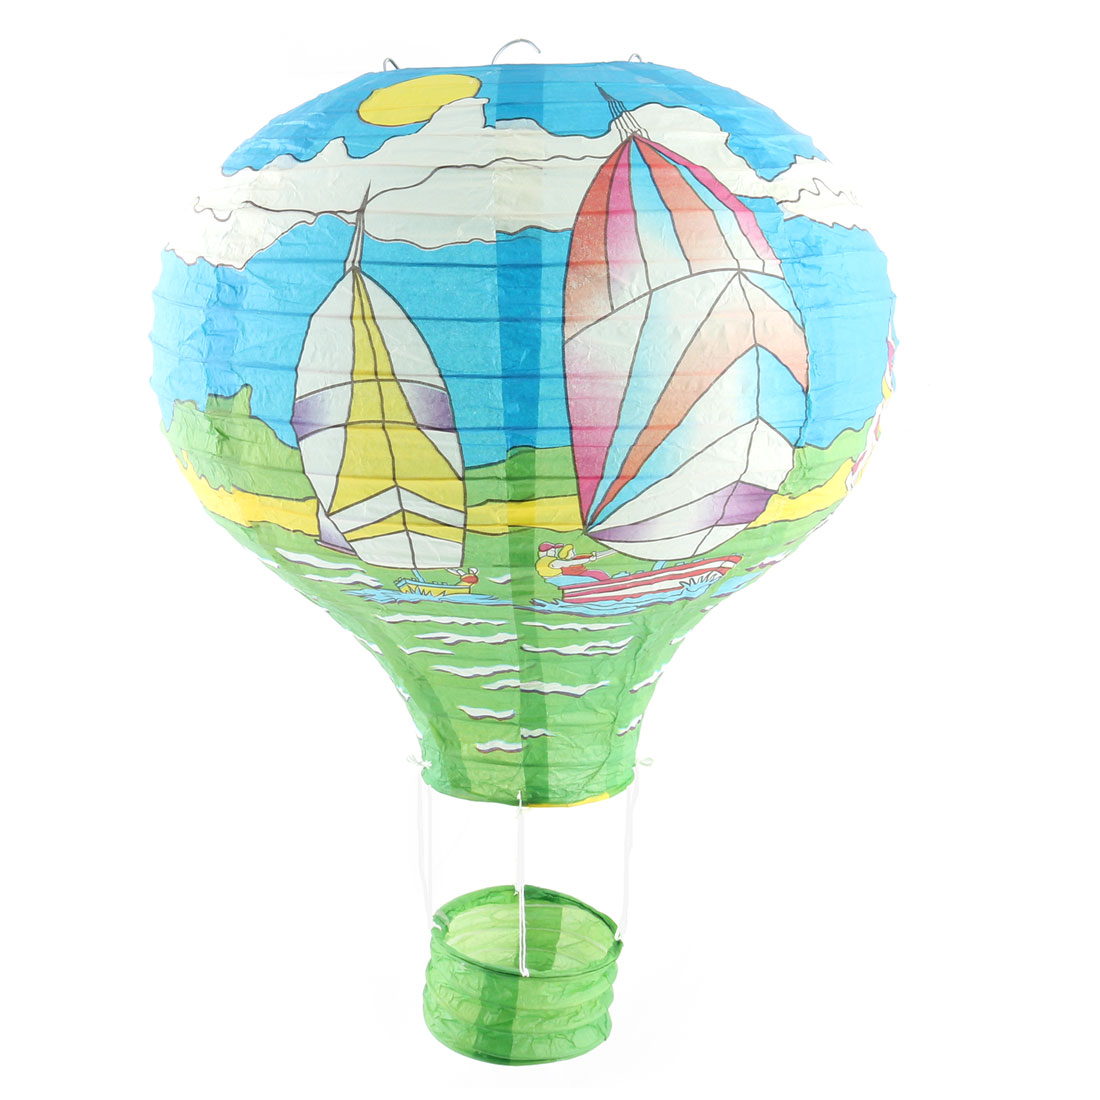 Graduation Wedding Paper Sailing Boat Pattern Lightless Hanging DIY Ornament Hot Air Balloon Lantern Blue 12 Inches Dia